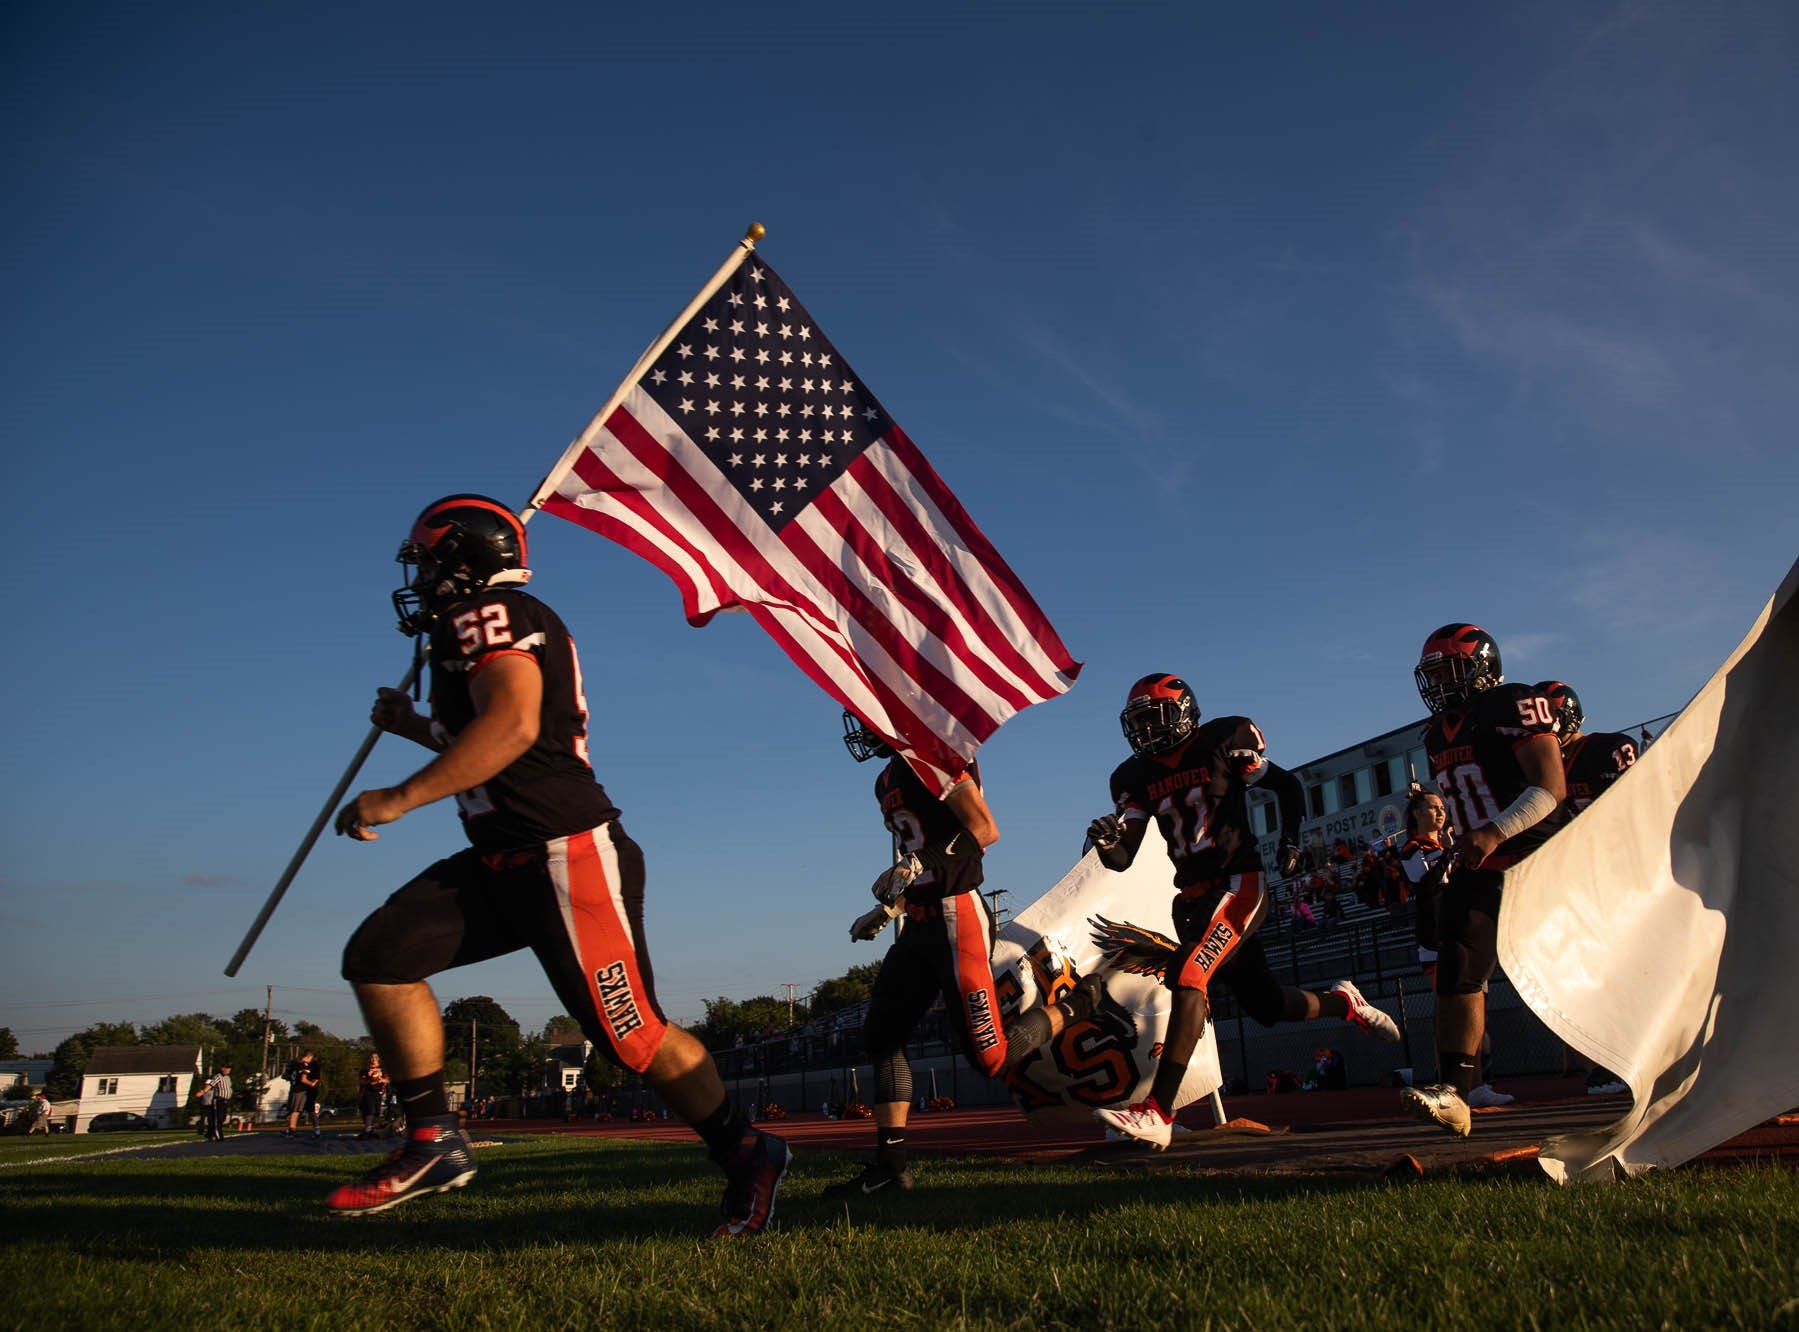 Hanover's Shane Warehime (52) holds an American flag as the Hanover Nighthawks enter the field for a football game between Hanover and Susquehannock, Friday, Aug. 24, 2018, at the Sheppard-Meyers field in Hanover.